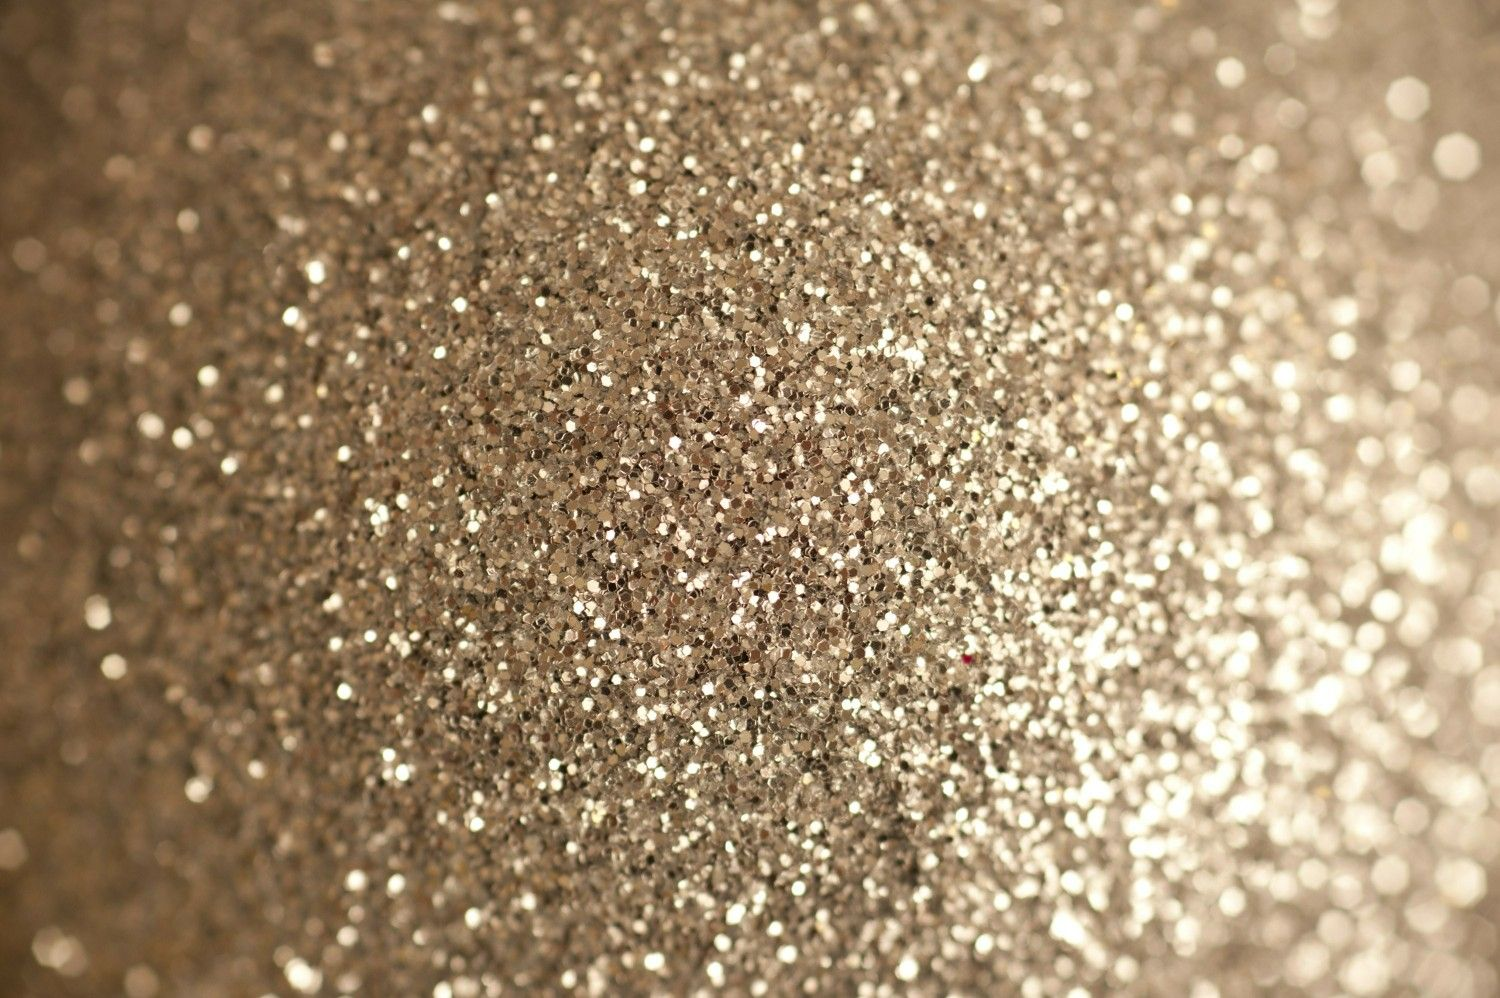 Pin by Hannah Marcello on glitter && gold (With images